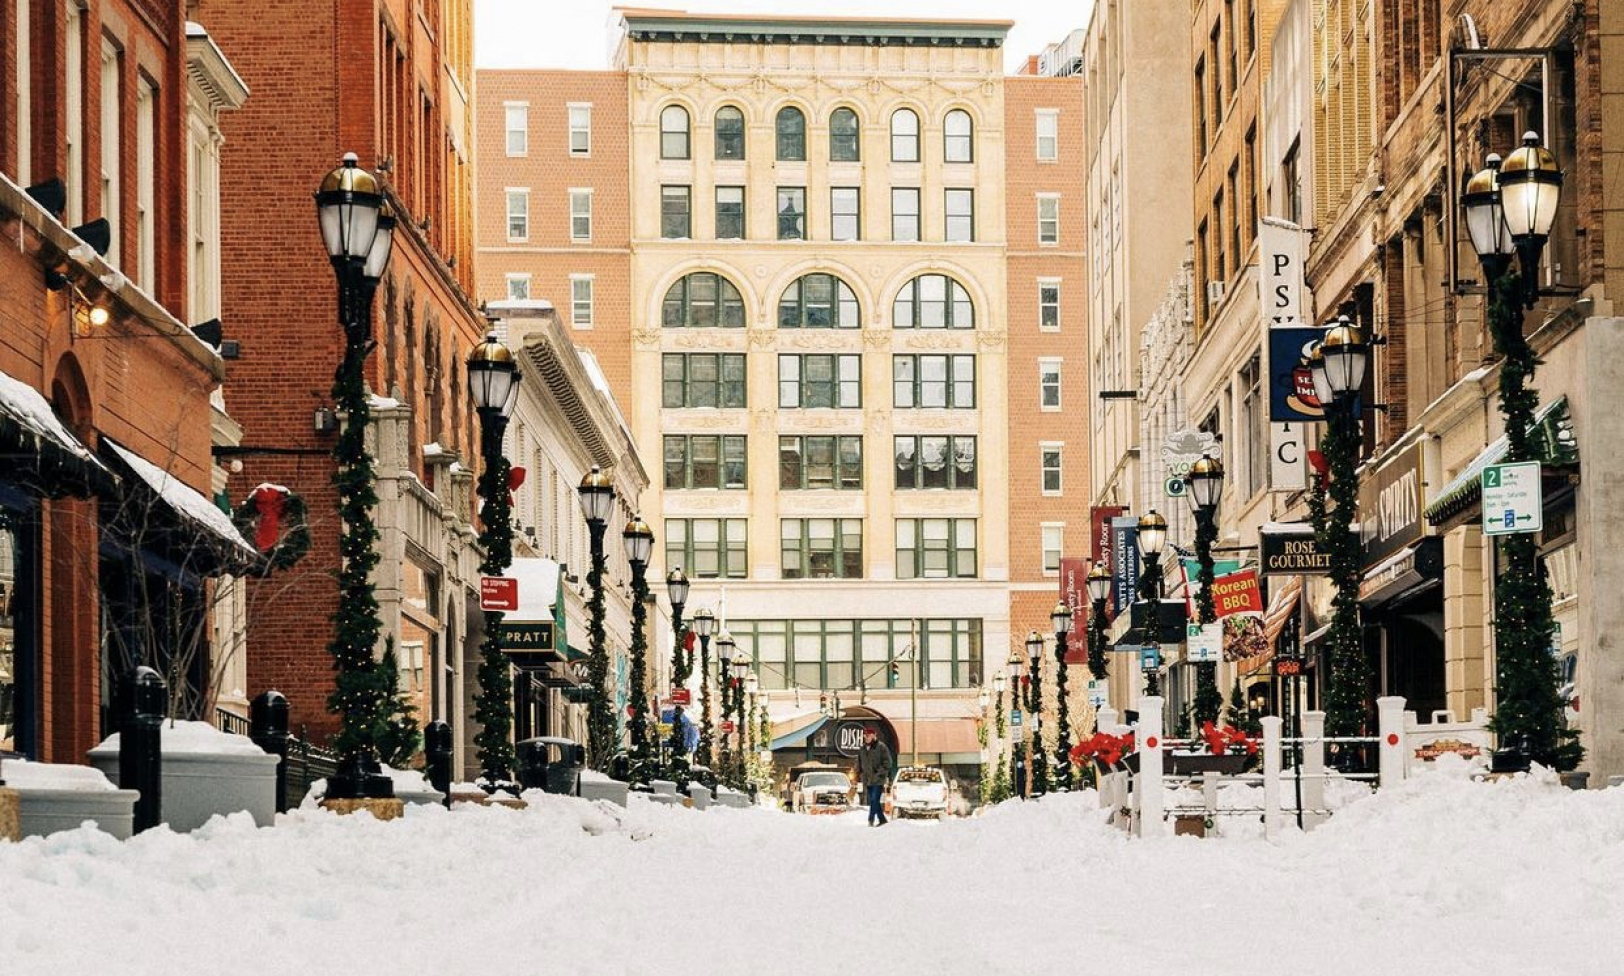 Pratt Street covered in snow after a storm.